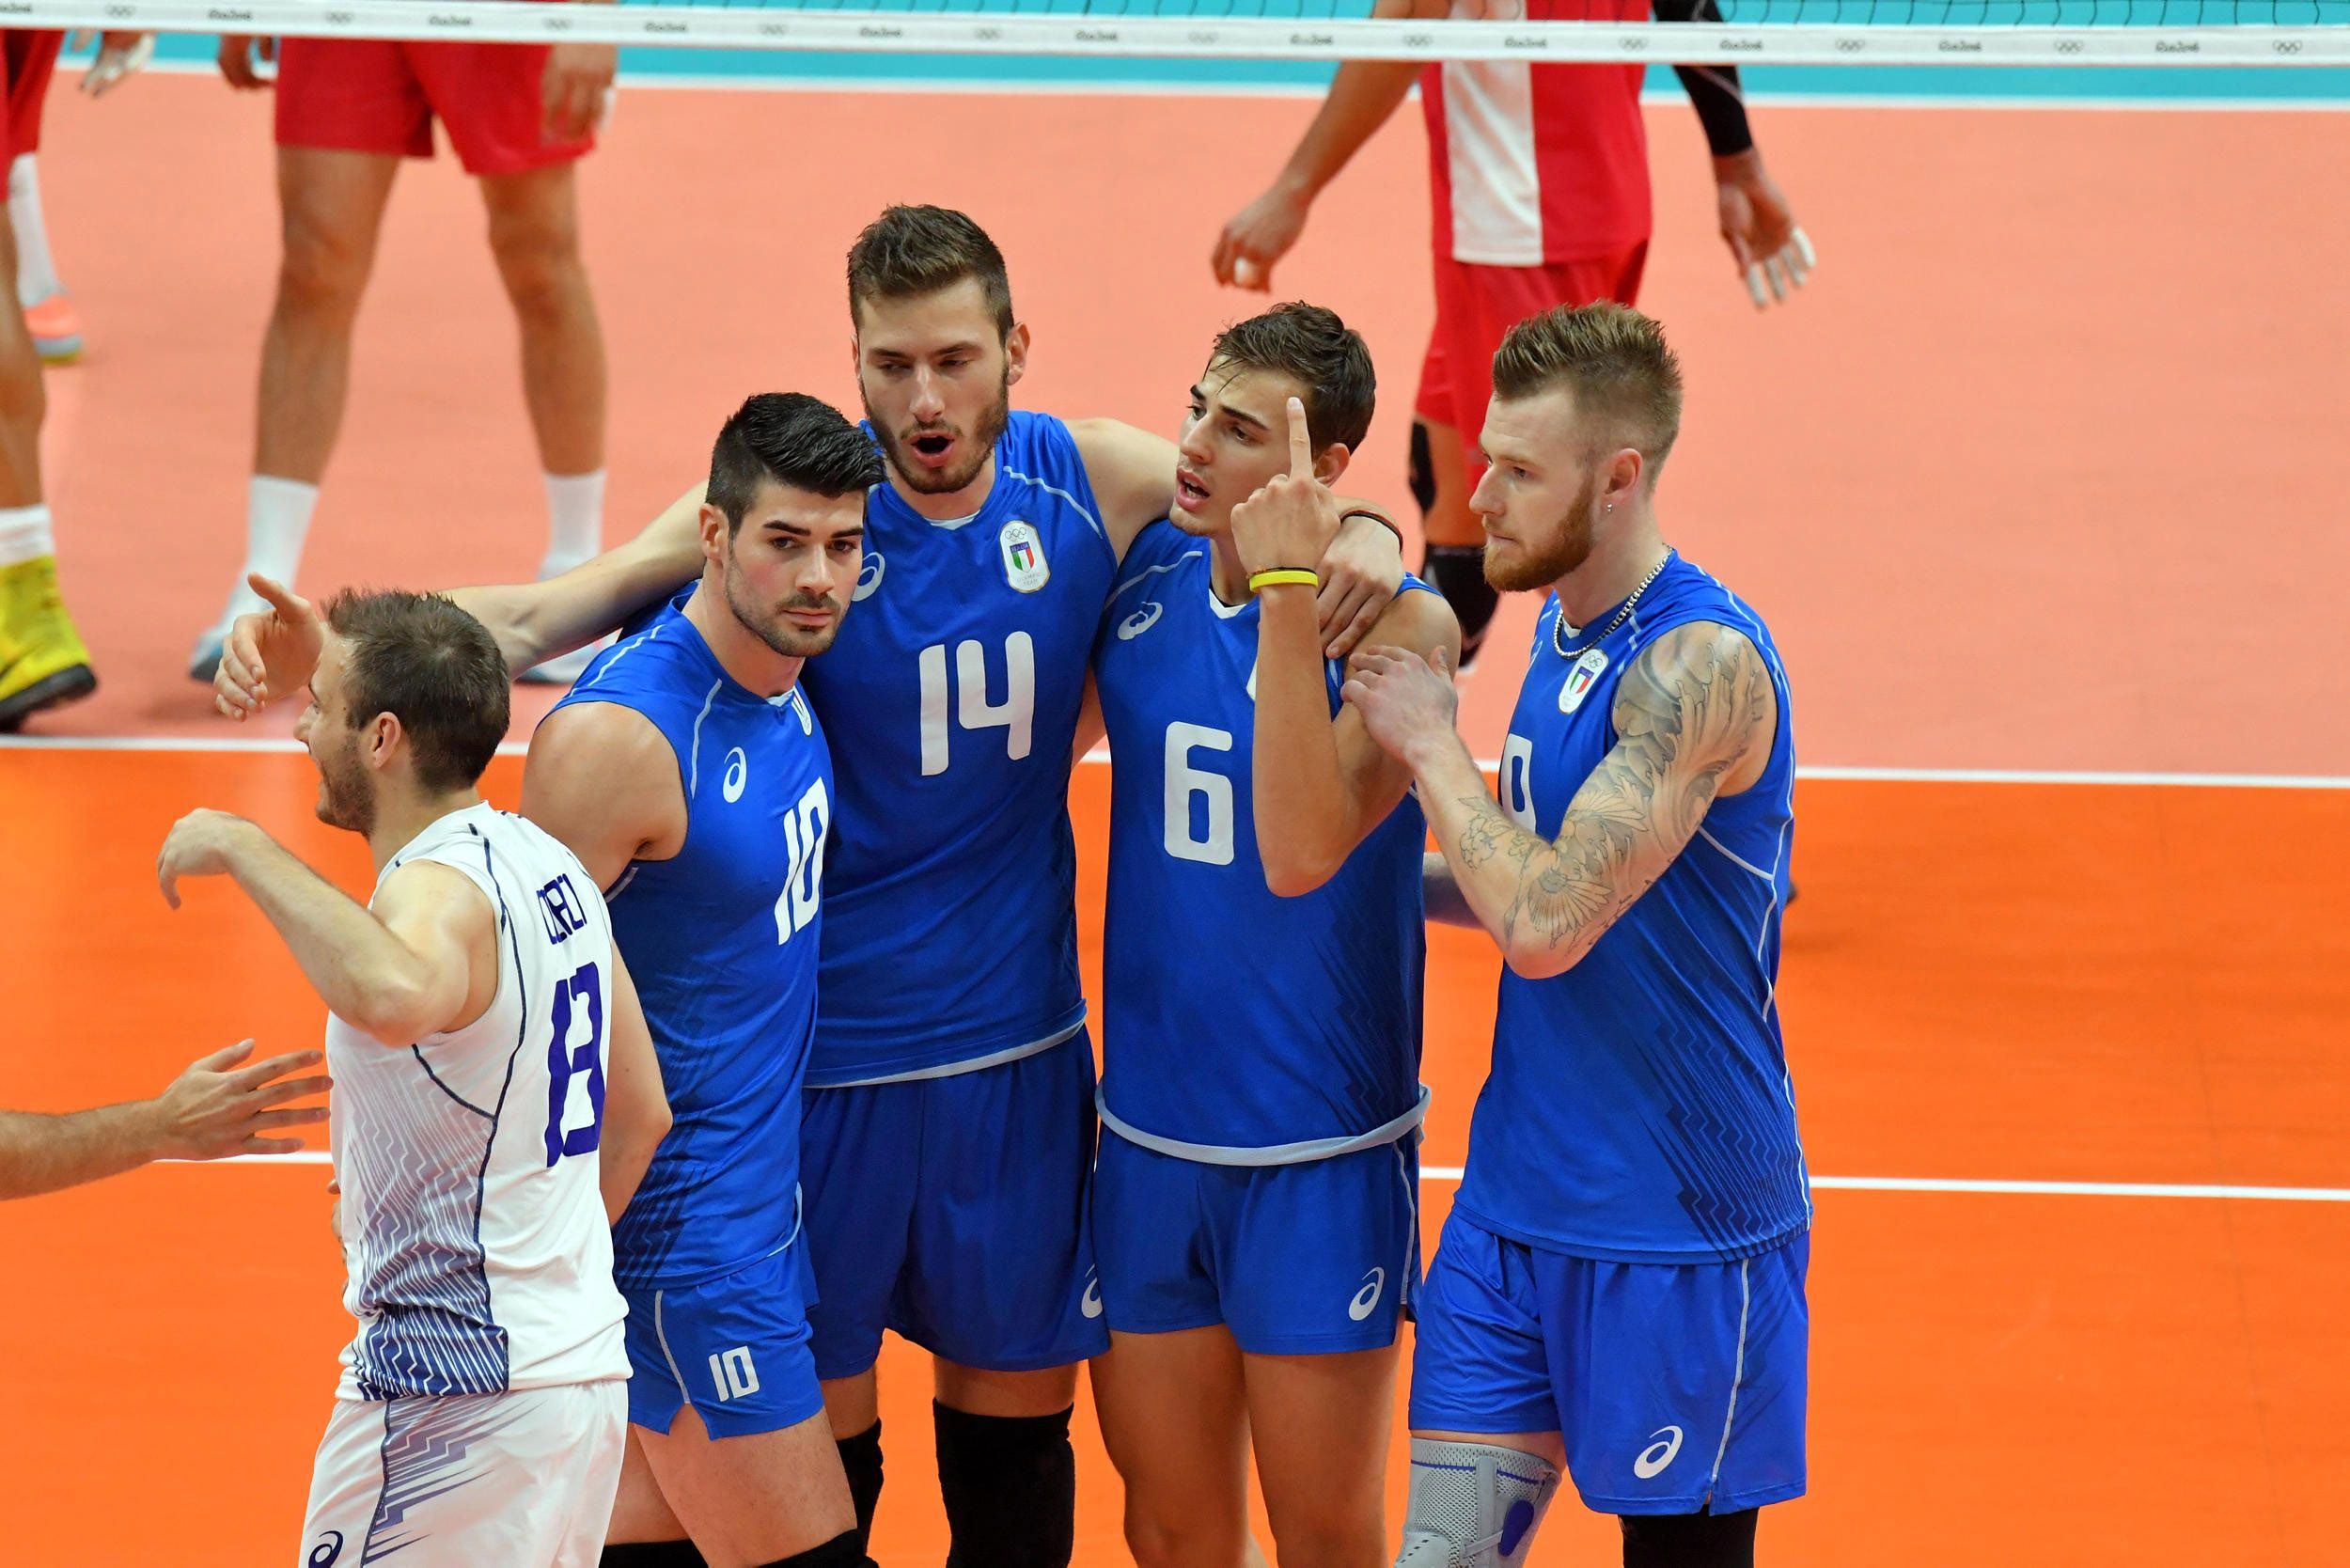 Italy Celebrate A Point Against Mexico In 2020 Volleyball Sports Jersey Celebrities